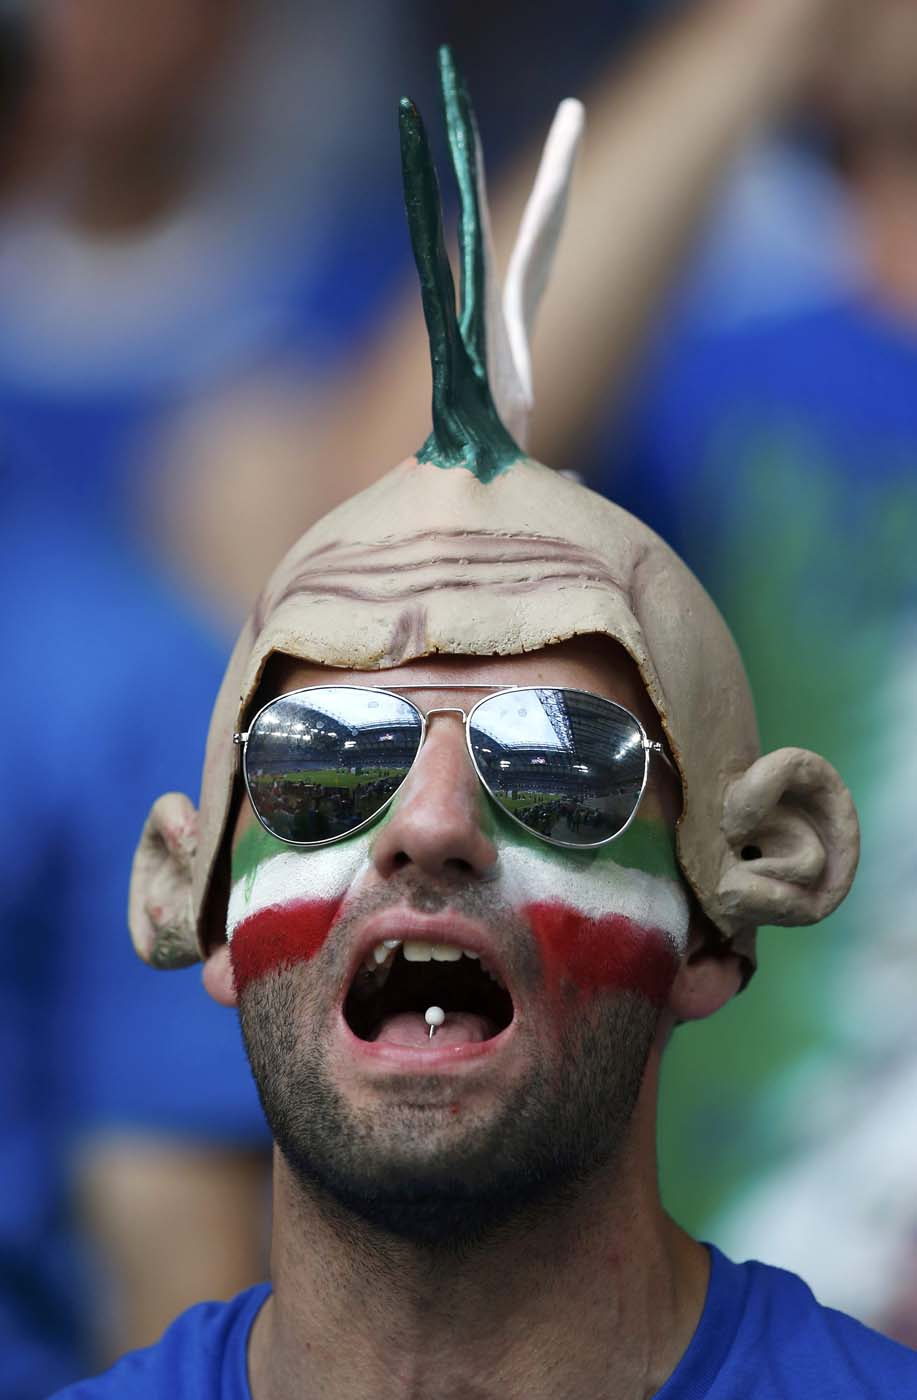 An Italy's fan cheers before their Group C Euro 2012 soccer match against Ireland at the Ctiy stadium in Poznan June 18, 2012. (Sergio Perez/Reuters)